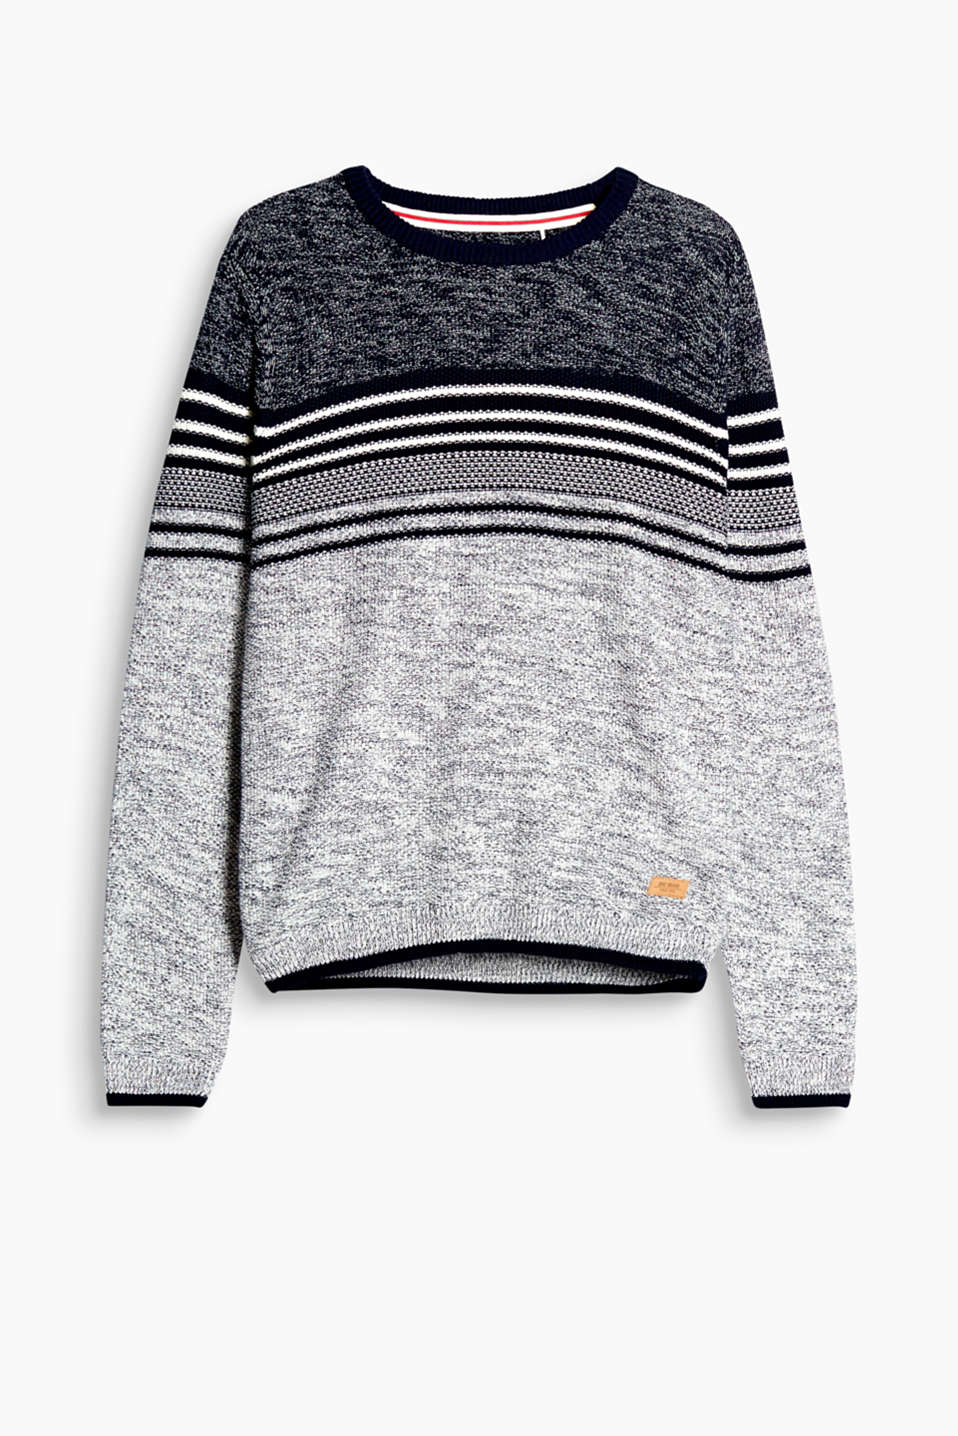 We love knitwear! The two-tone textured yarn and stripes make this sailor-style jumper extremely eye-catching!